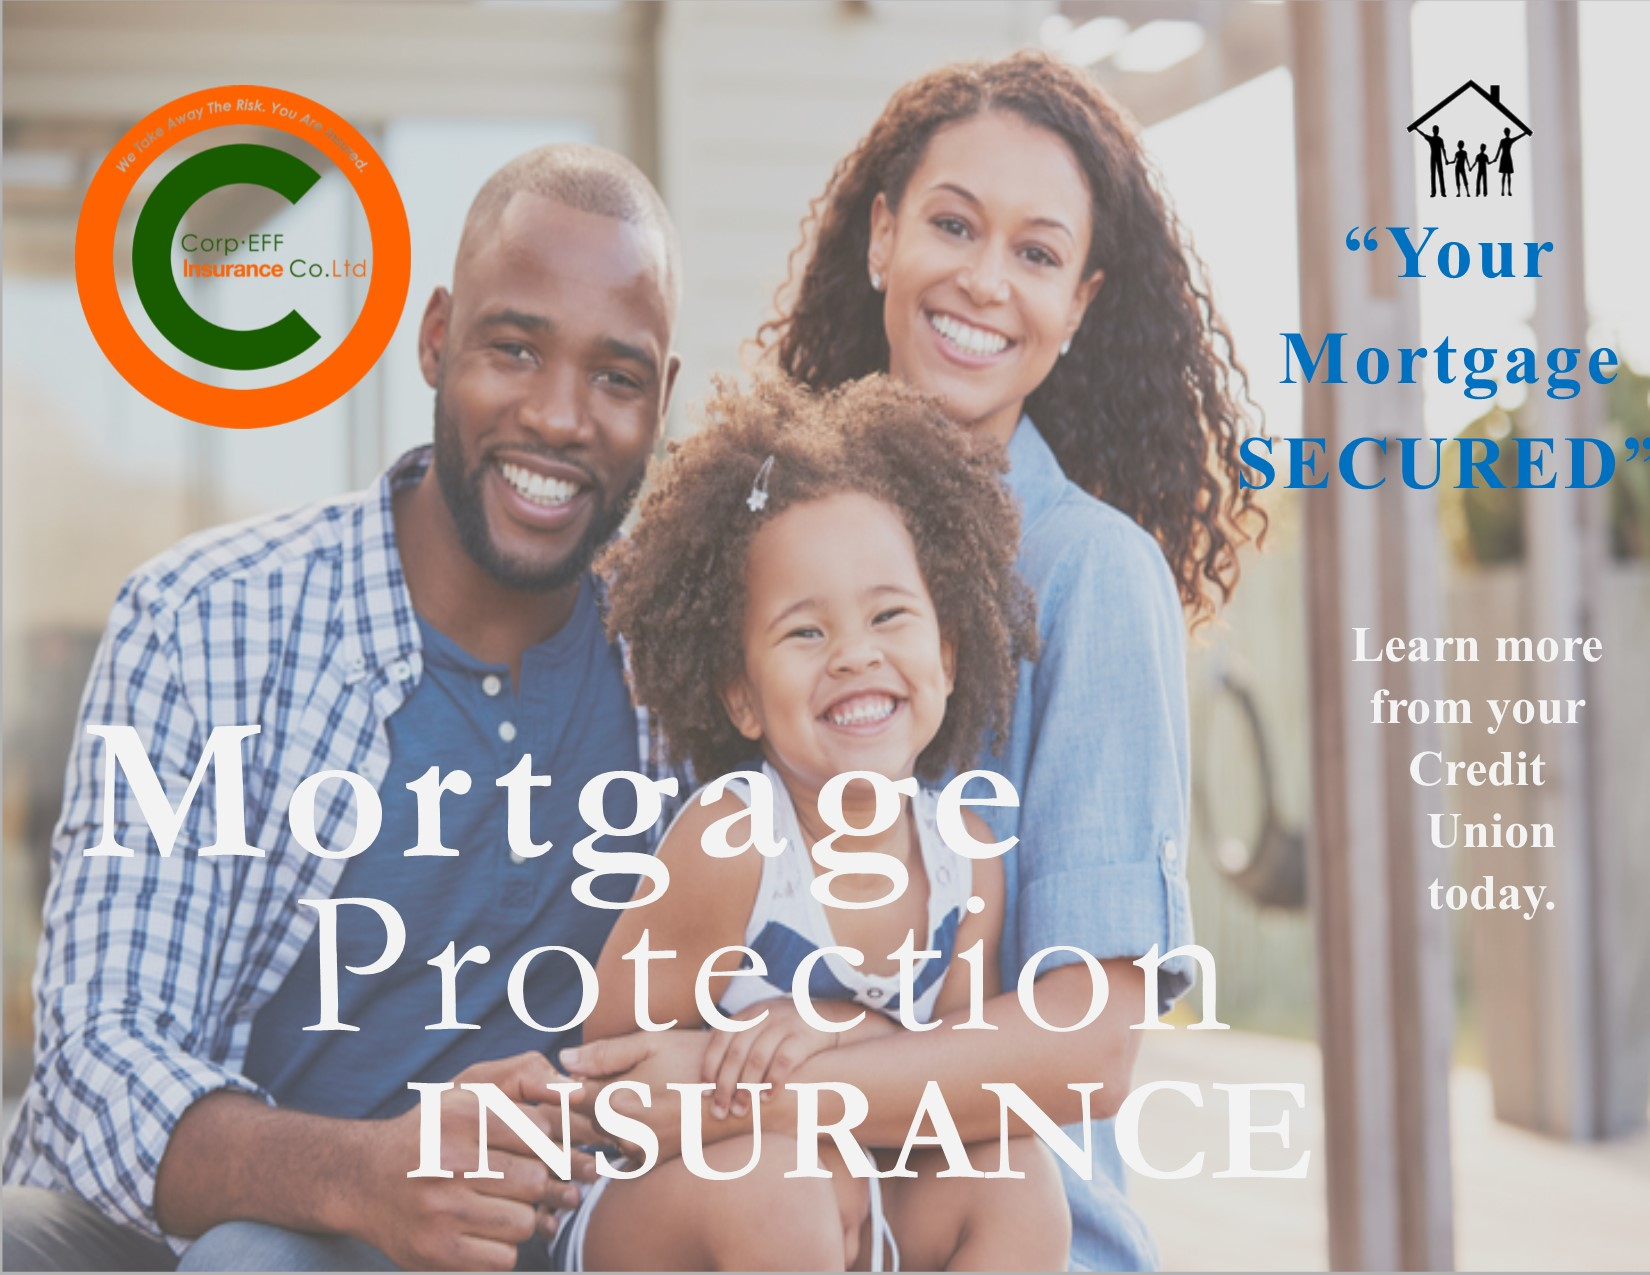 Mortgage Protection Insurance New Logo#2 (1)